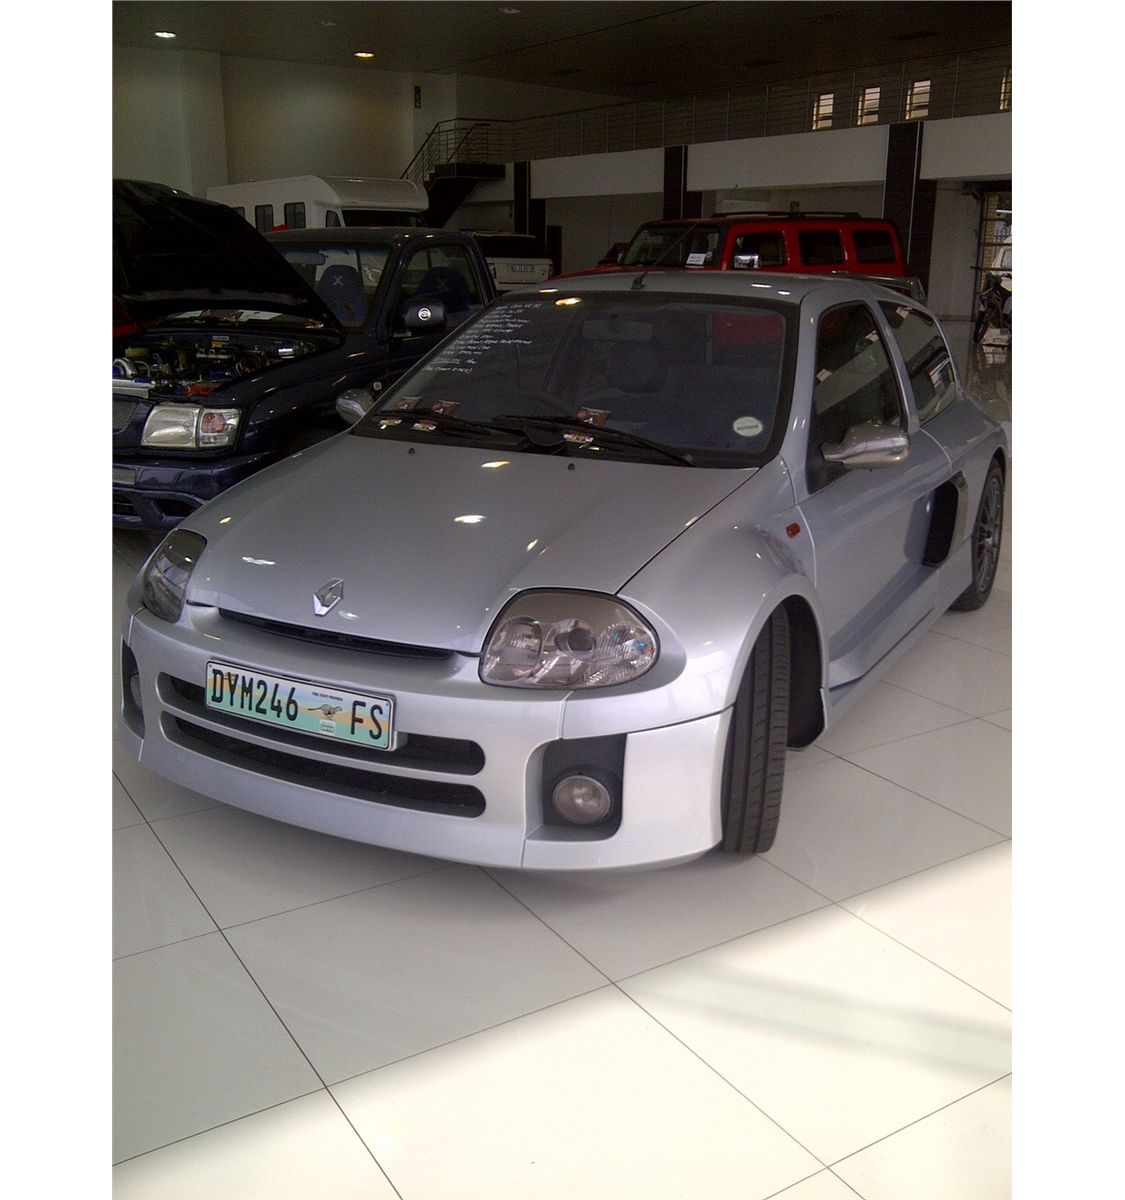 Renault Clio V6: TO REQUEST: Renault Clio 3L V6 F1 Spec (Rear Motor) 200KW